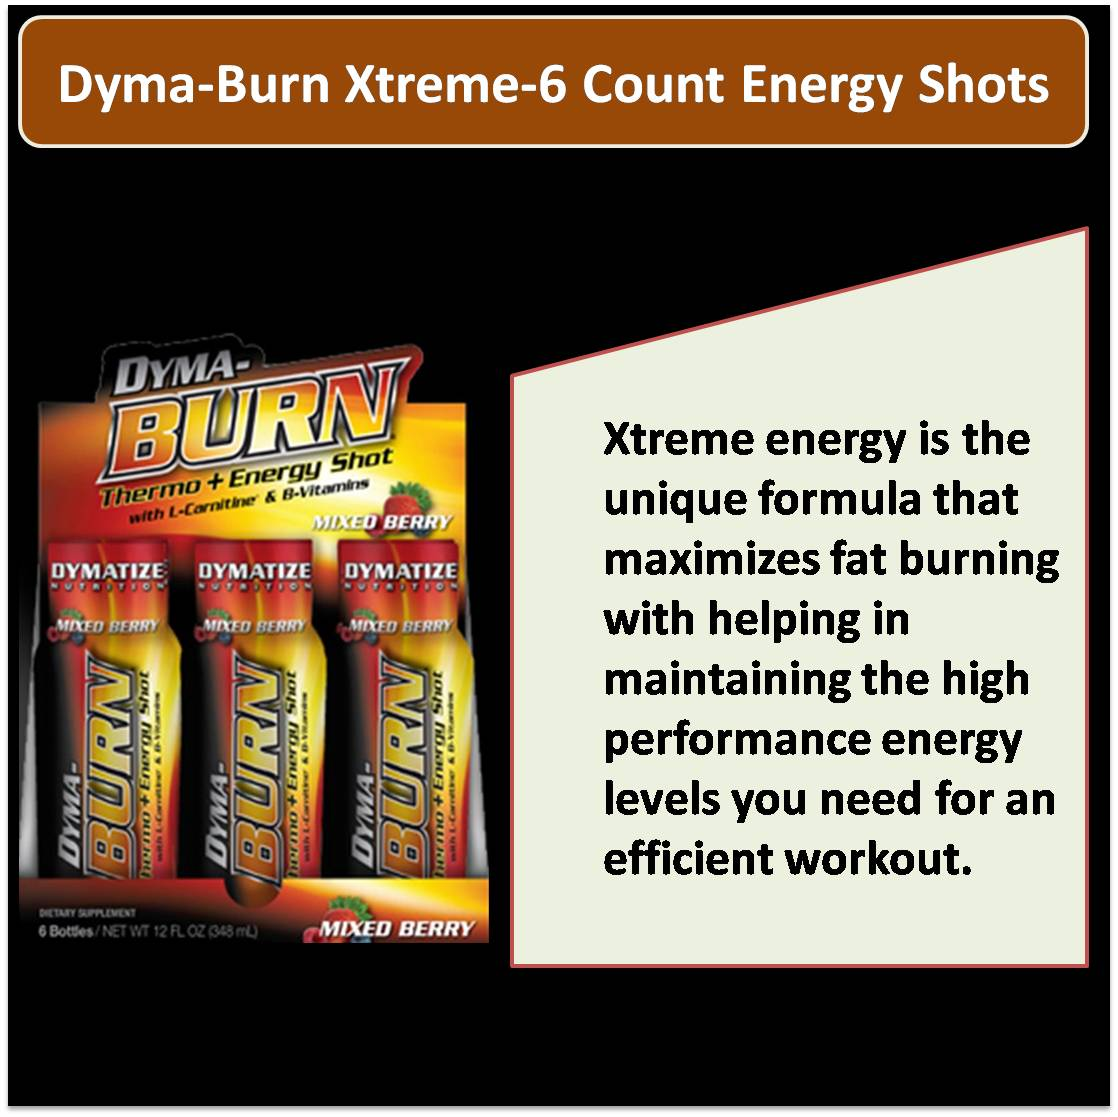 Dyma Burn Xtreme 6 Count Energy Shots